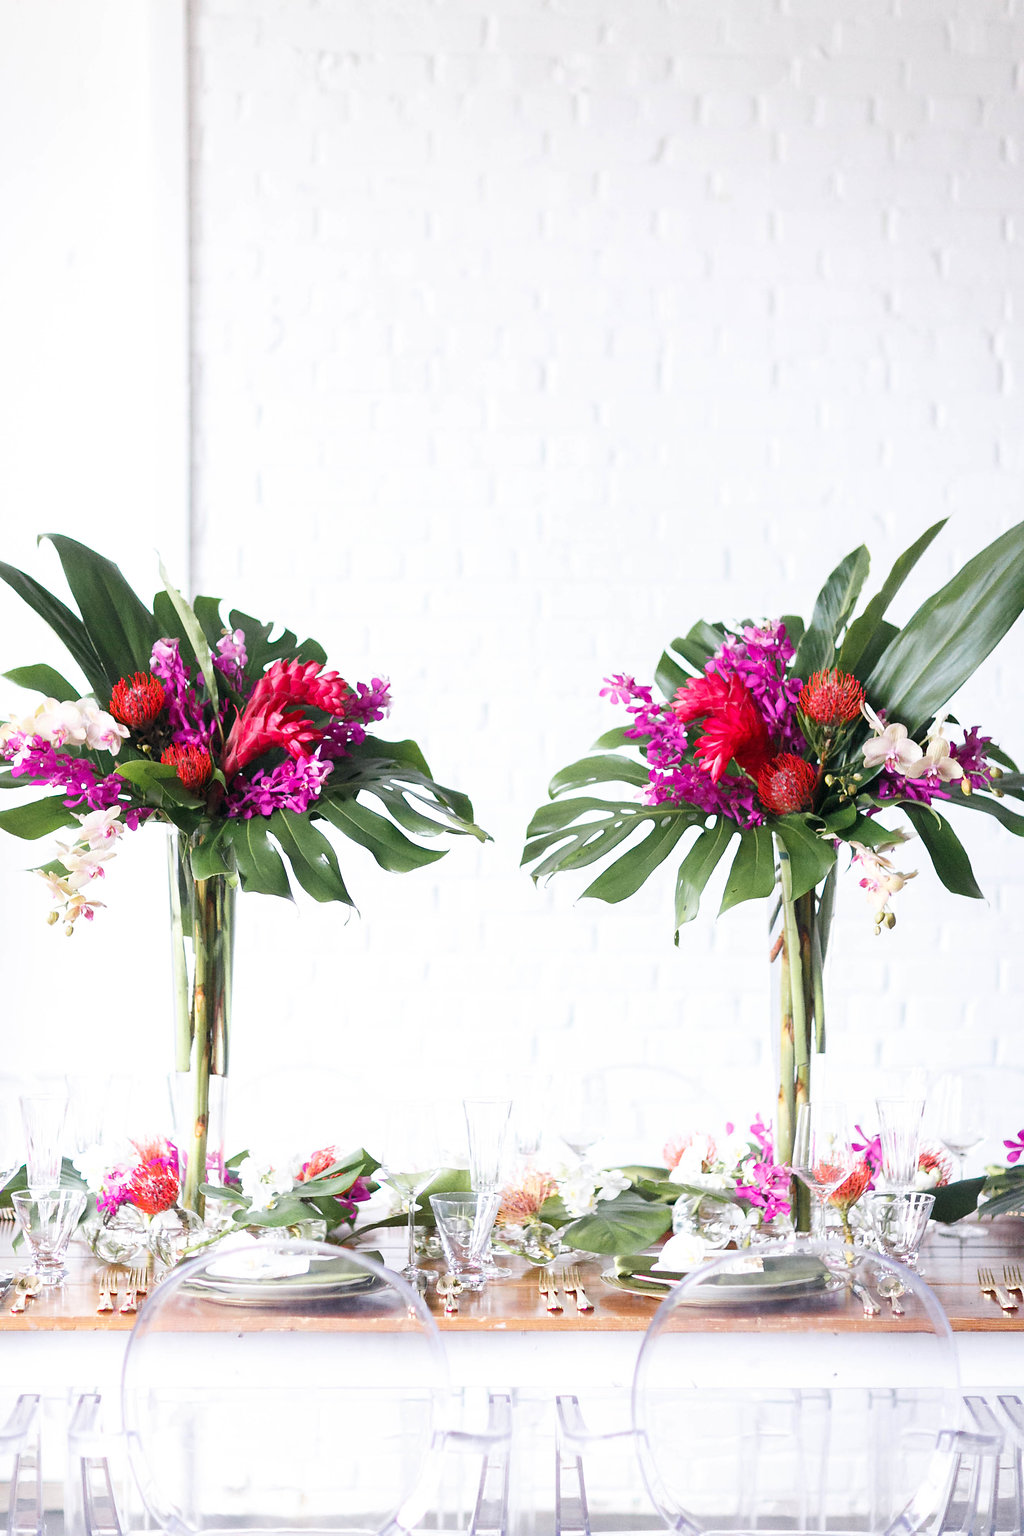 Modern Industrial Wedding Inspiration with Tropical Vibes - photo by Virginia Ashley Photography https://ruffledblog.com/modern-industrial-wedding-inspiration-with-tropical-vibes